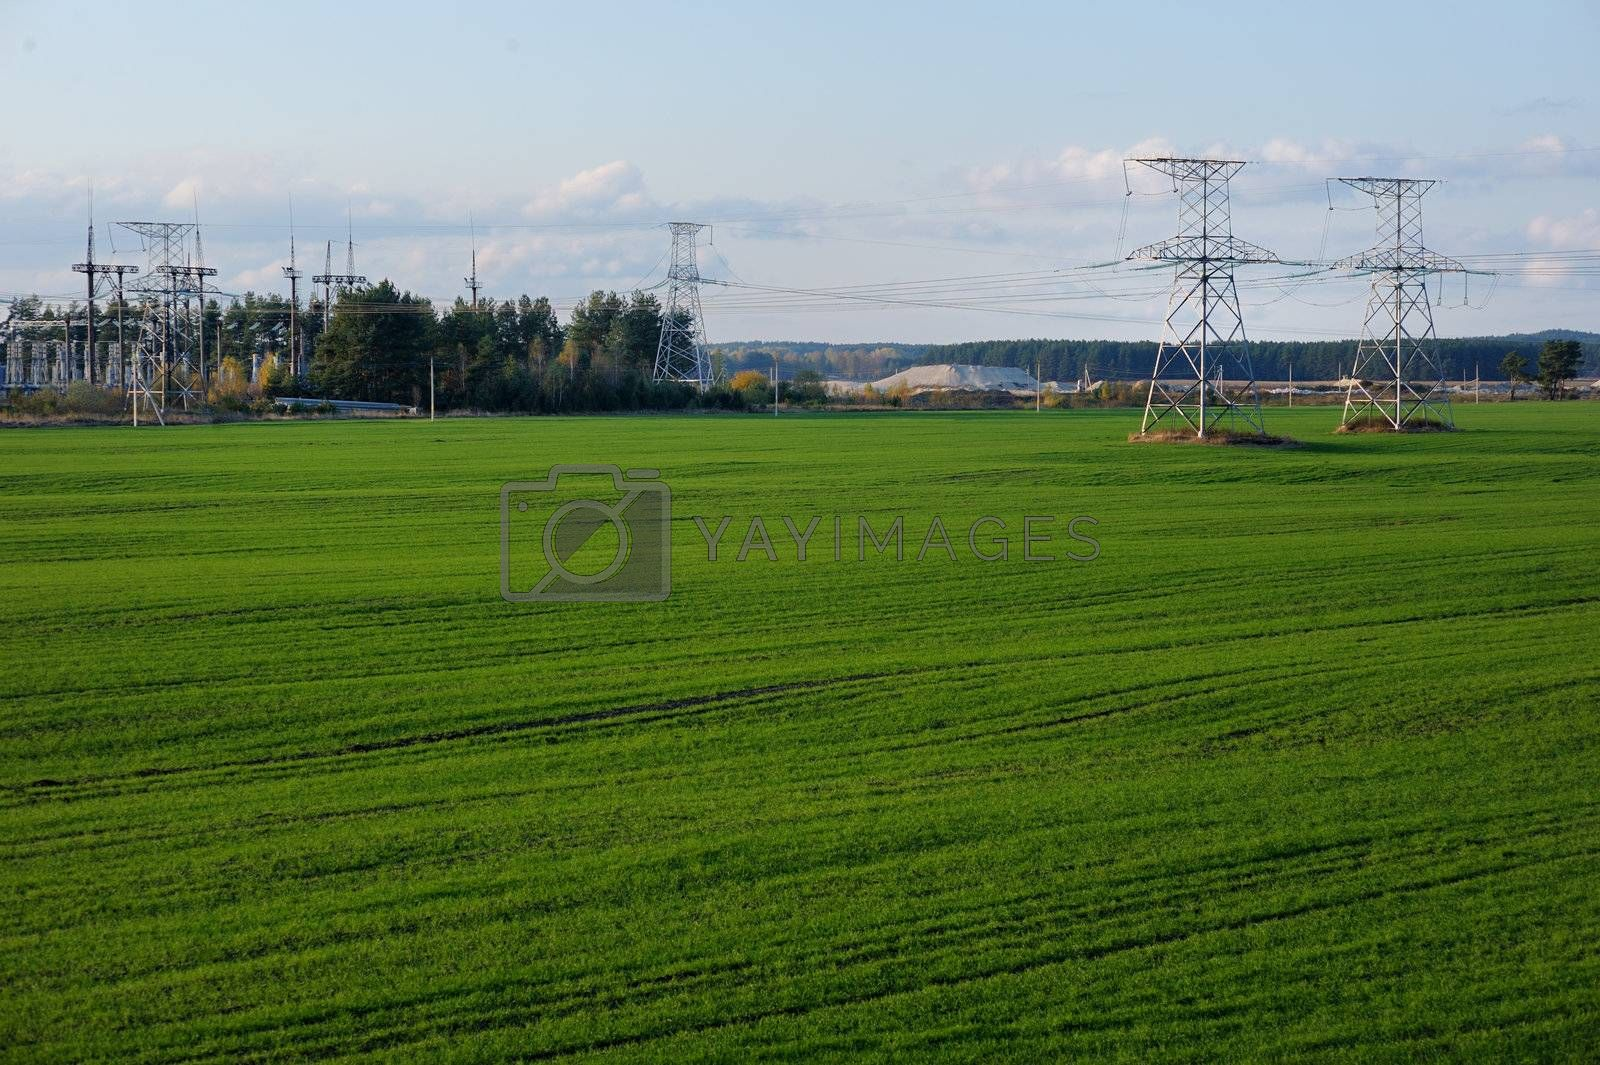 Countryside lanscape with power lines and grass field by maximkabb